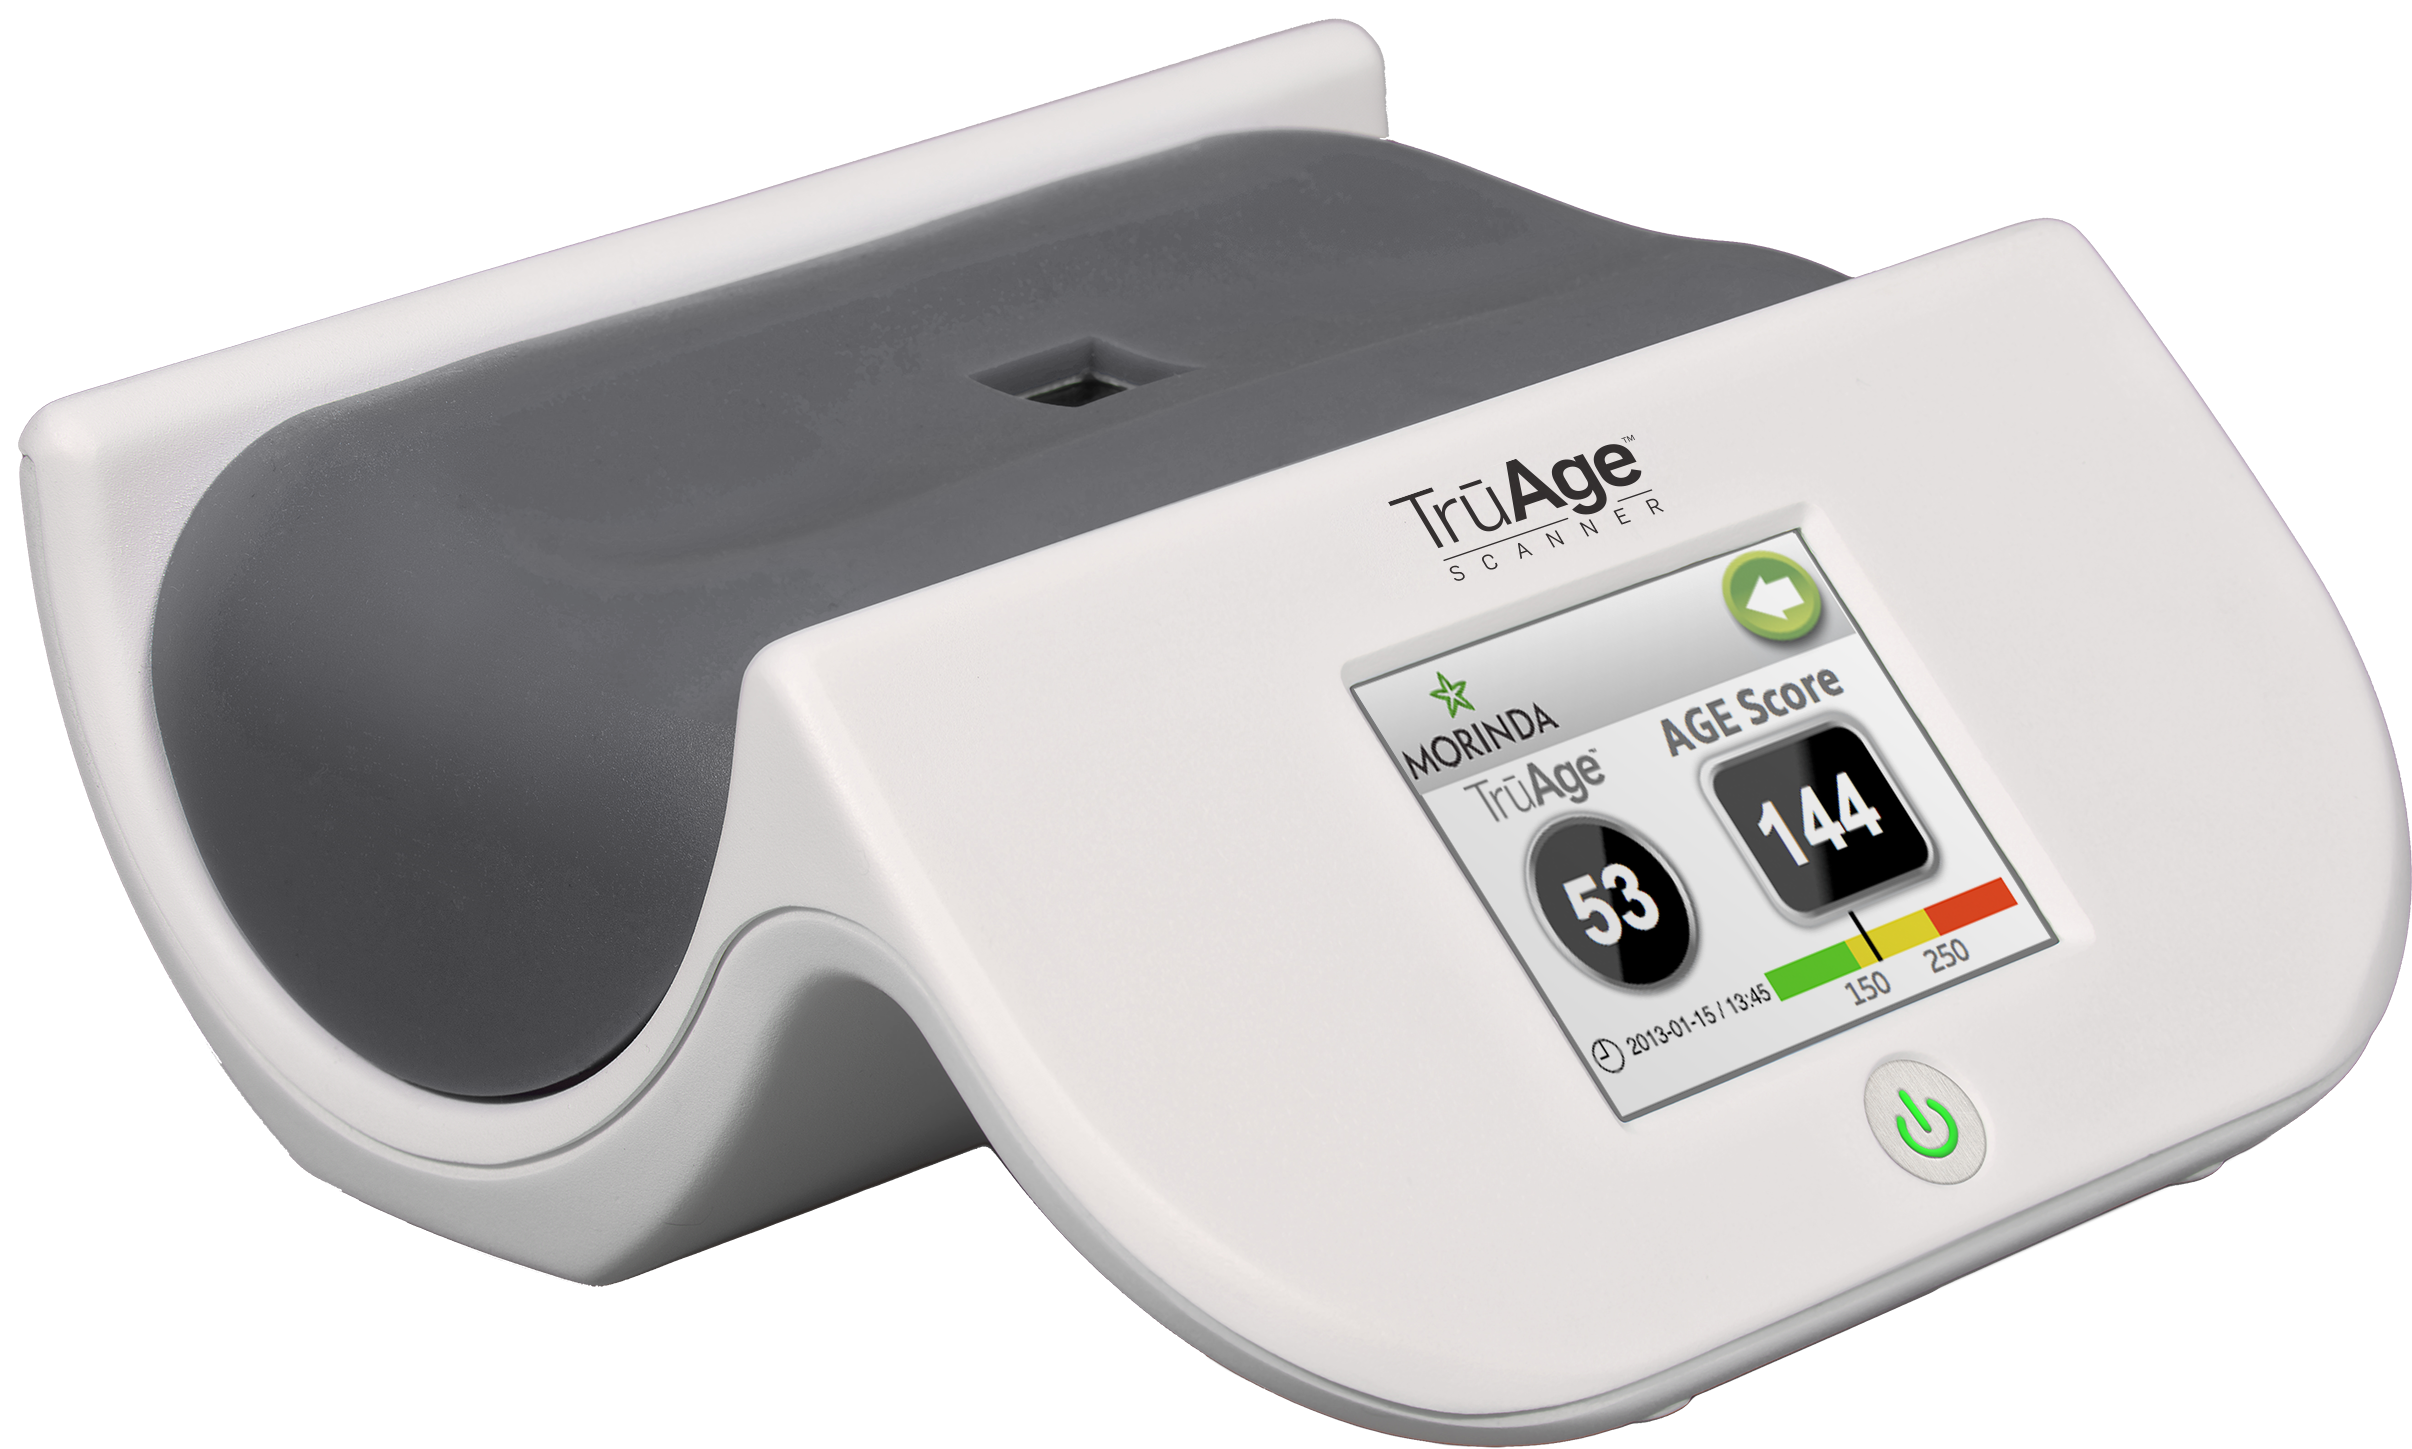 everything you ever needed to know about the truage scanner